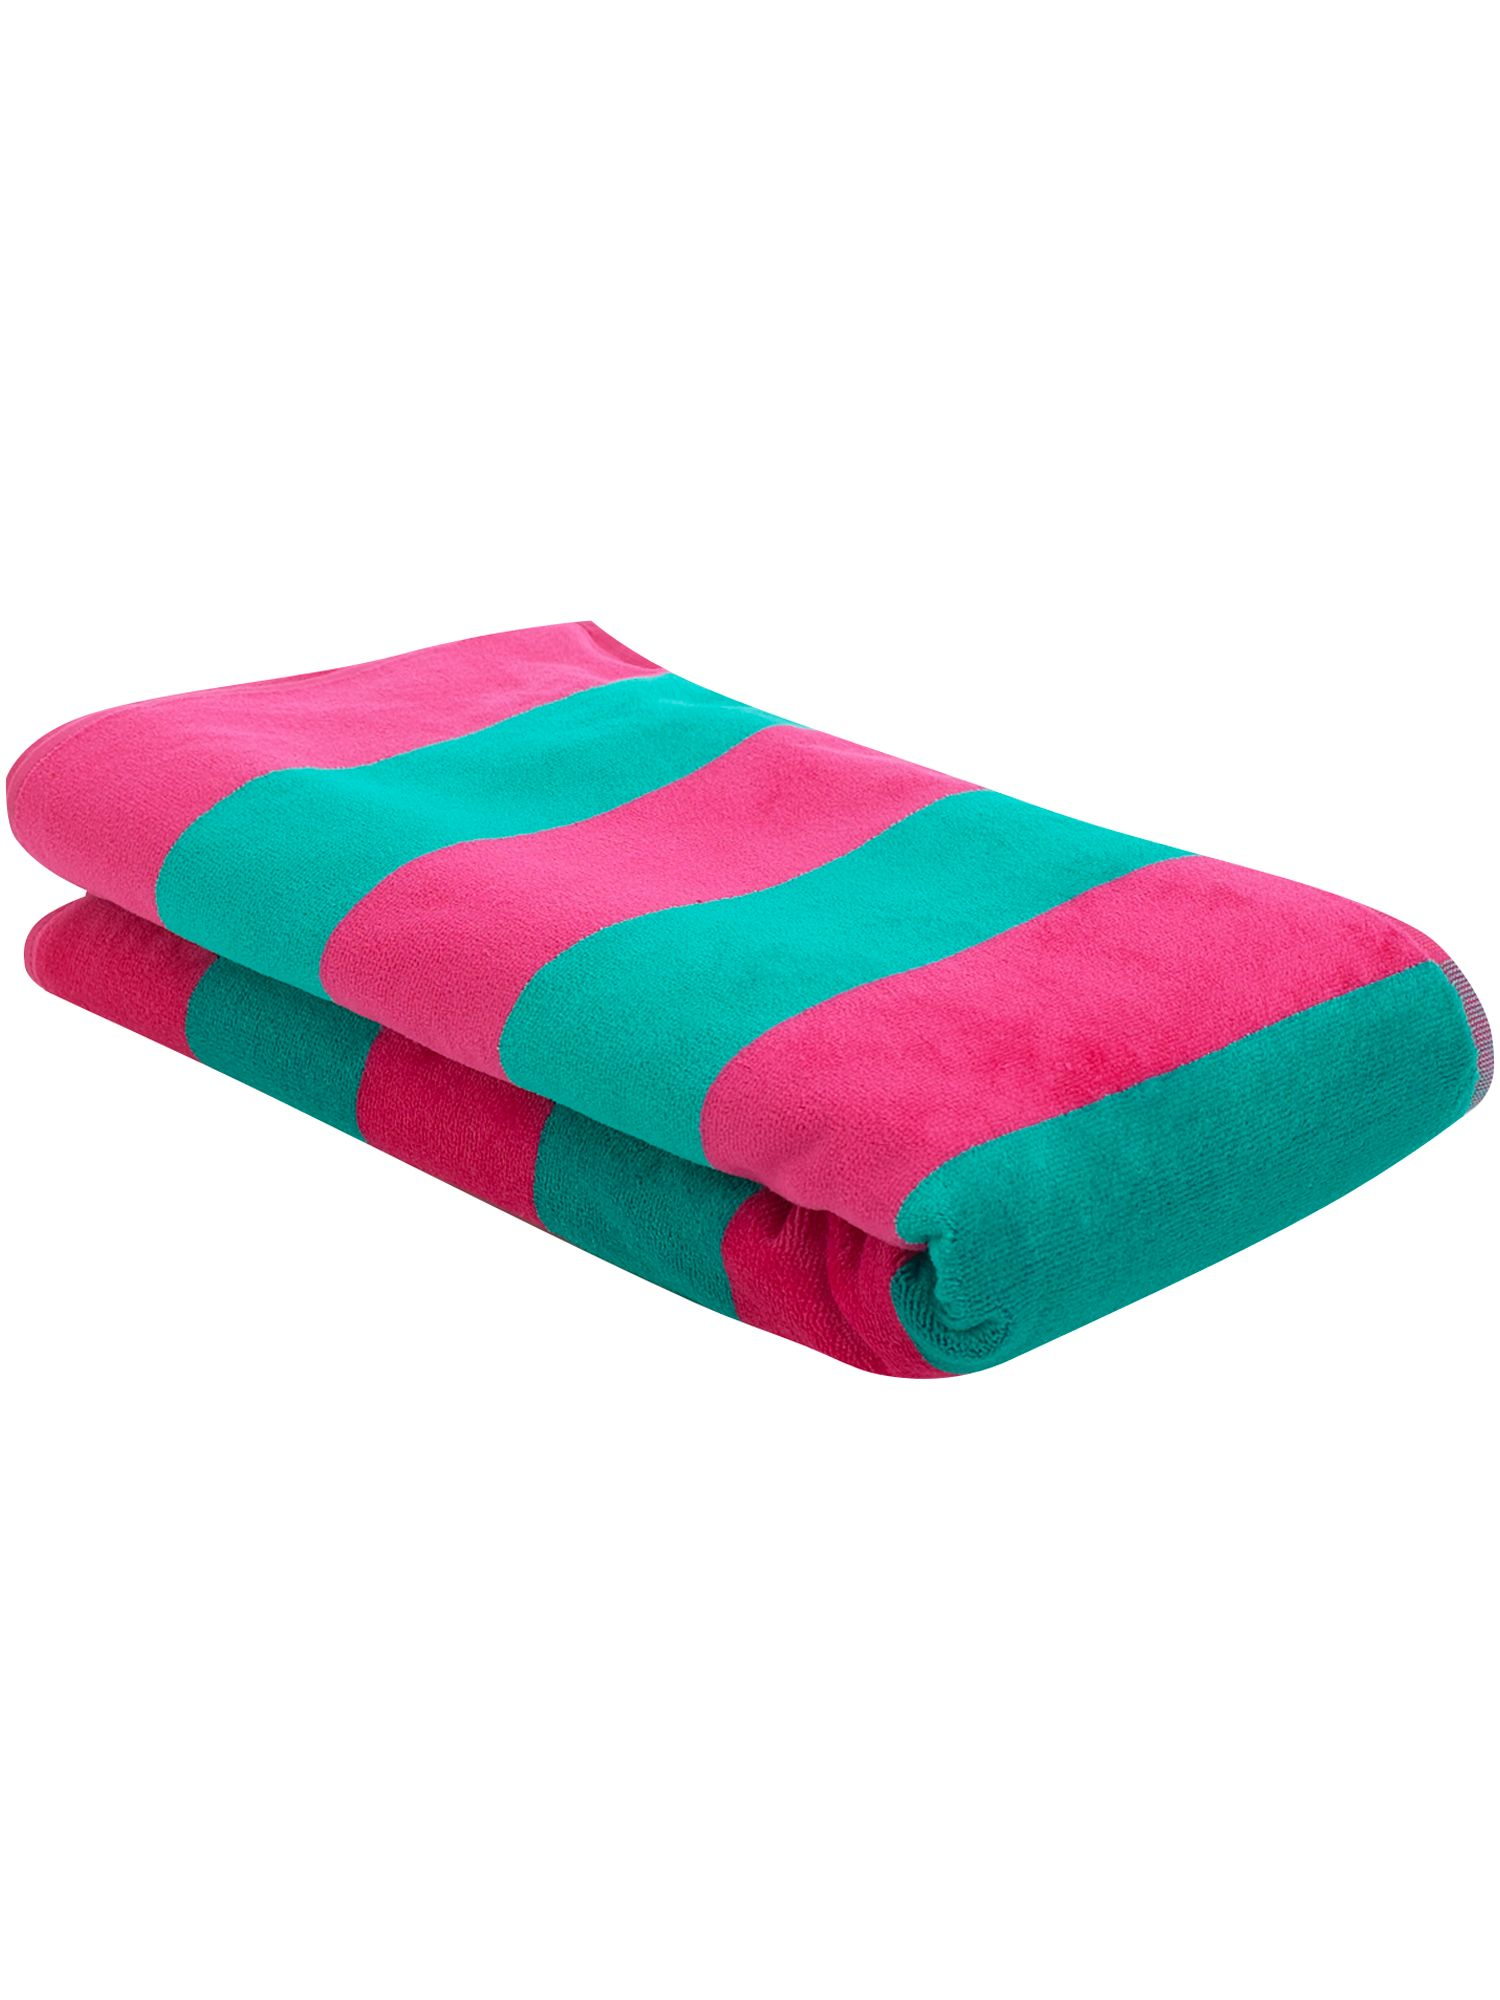 Compare Prices Of Beach Towels Read Beach Towel Reviews Buy Online